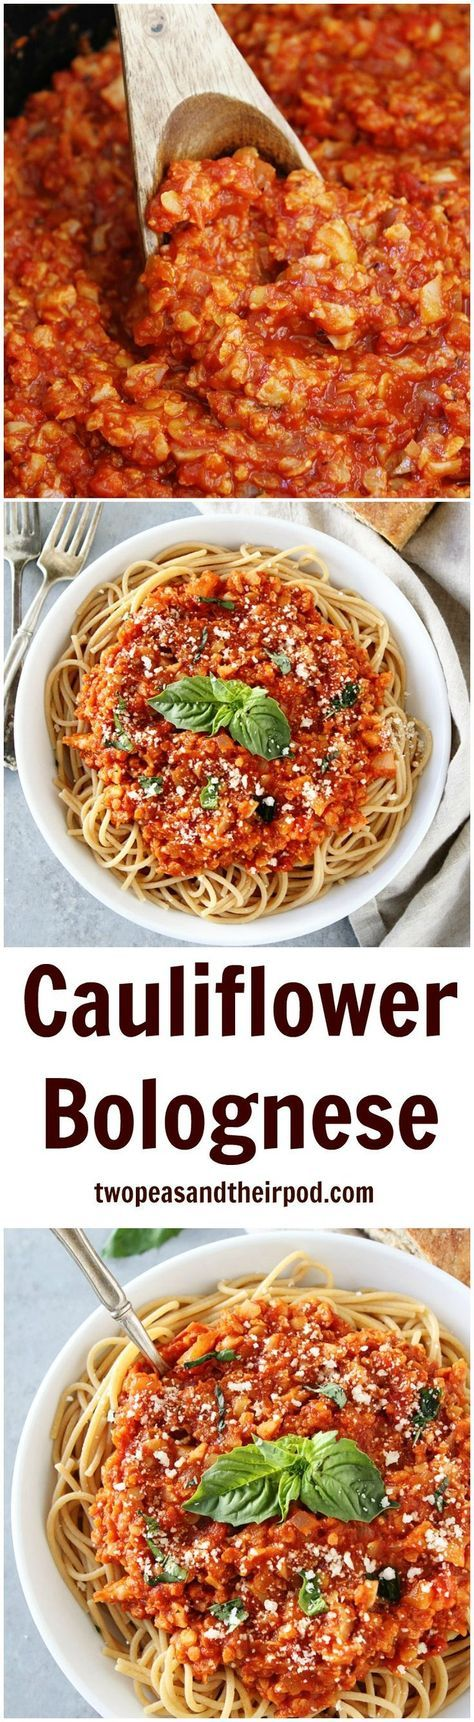 Cauliflower Bolognese Sauce Recipe on twopeasandtheirpo.... You will never believe this healthy and hearty sauce is made with cauliflower. Even meat lovers and kids enjoy this delicious sauce! You have to try it!